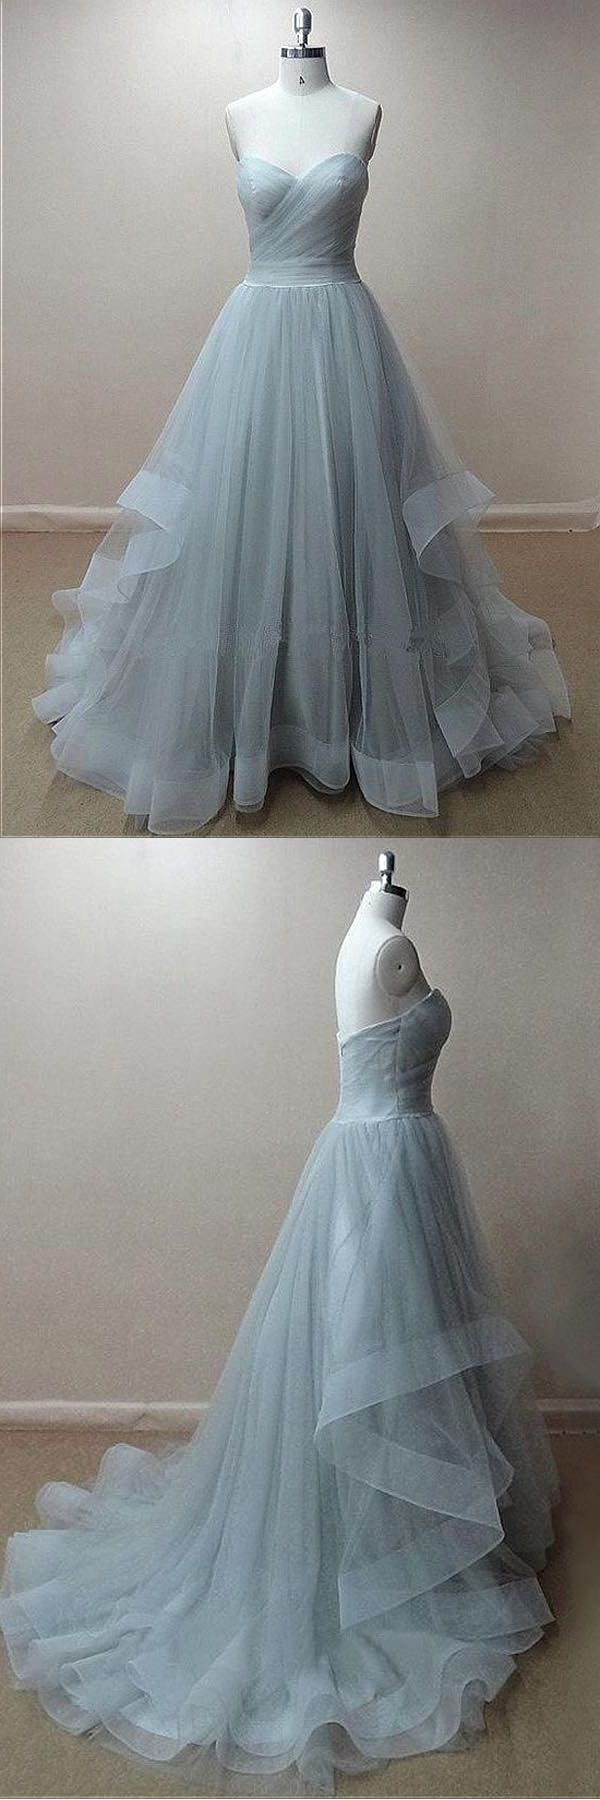 Fine prom dresses chic tulle sweetheart neckline floorlength a